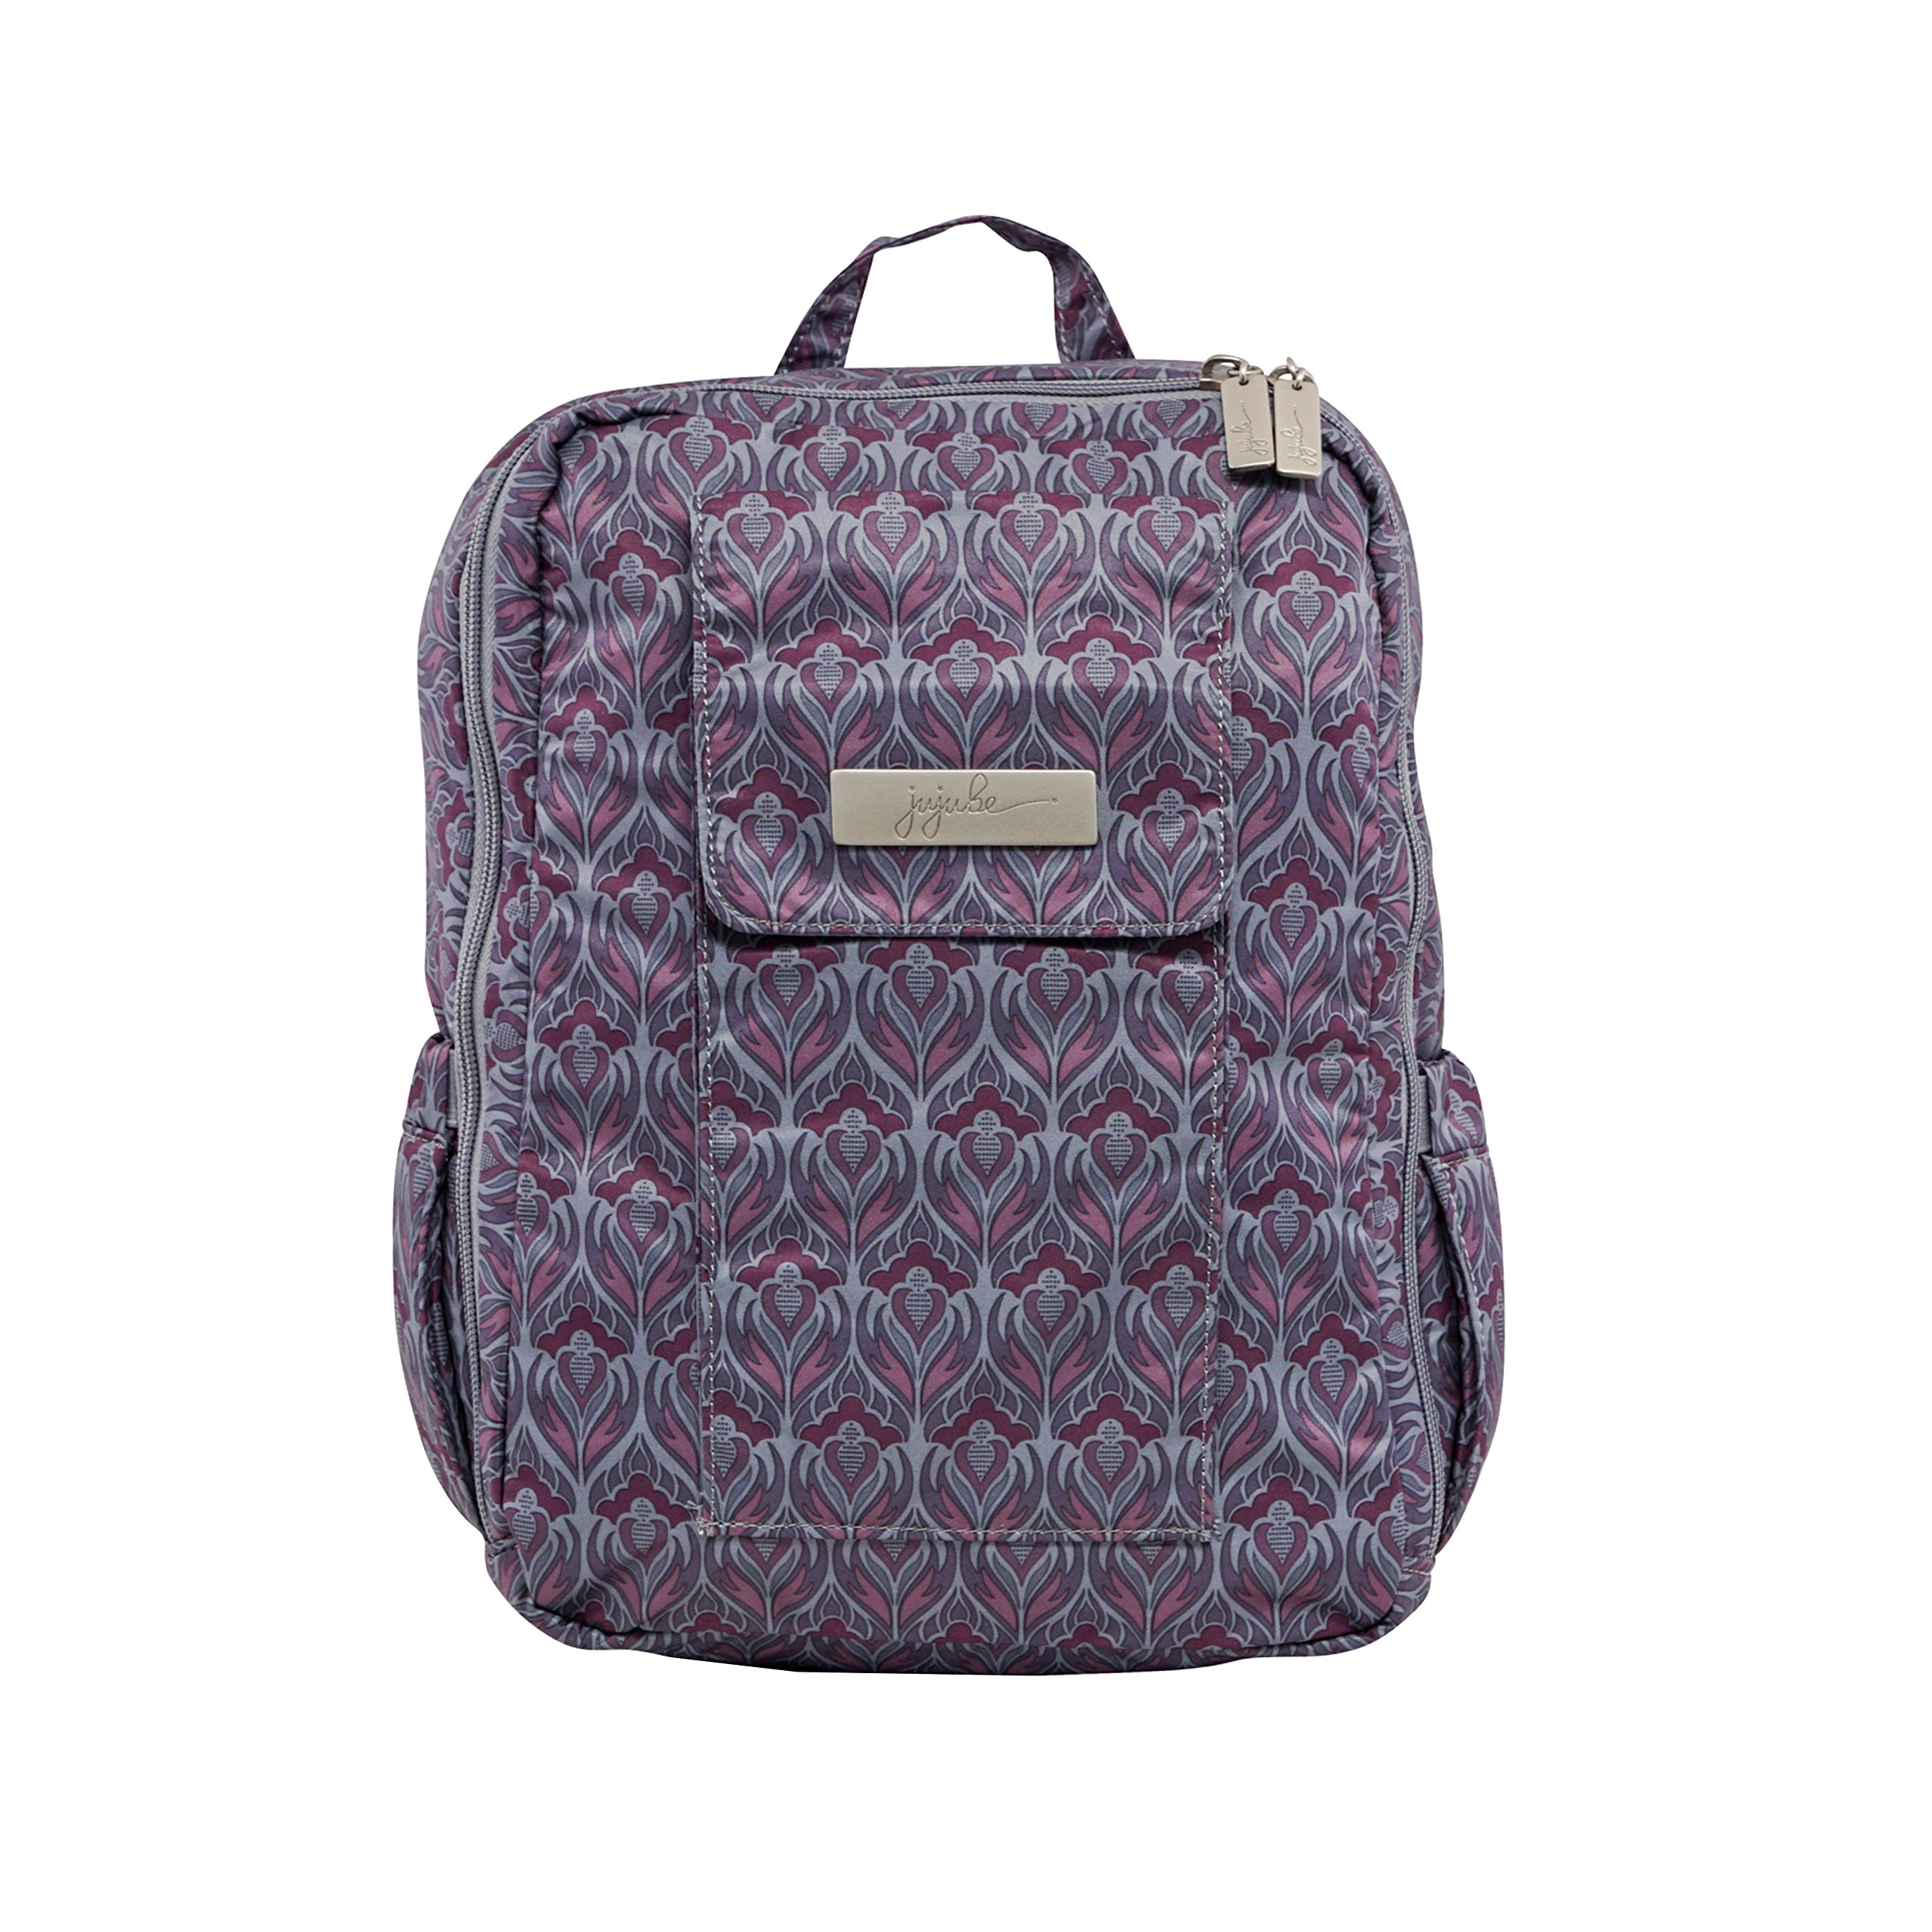 Ju-Ju-Be Classic Collection MiniBe Small Backpack, Amethyst Ice